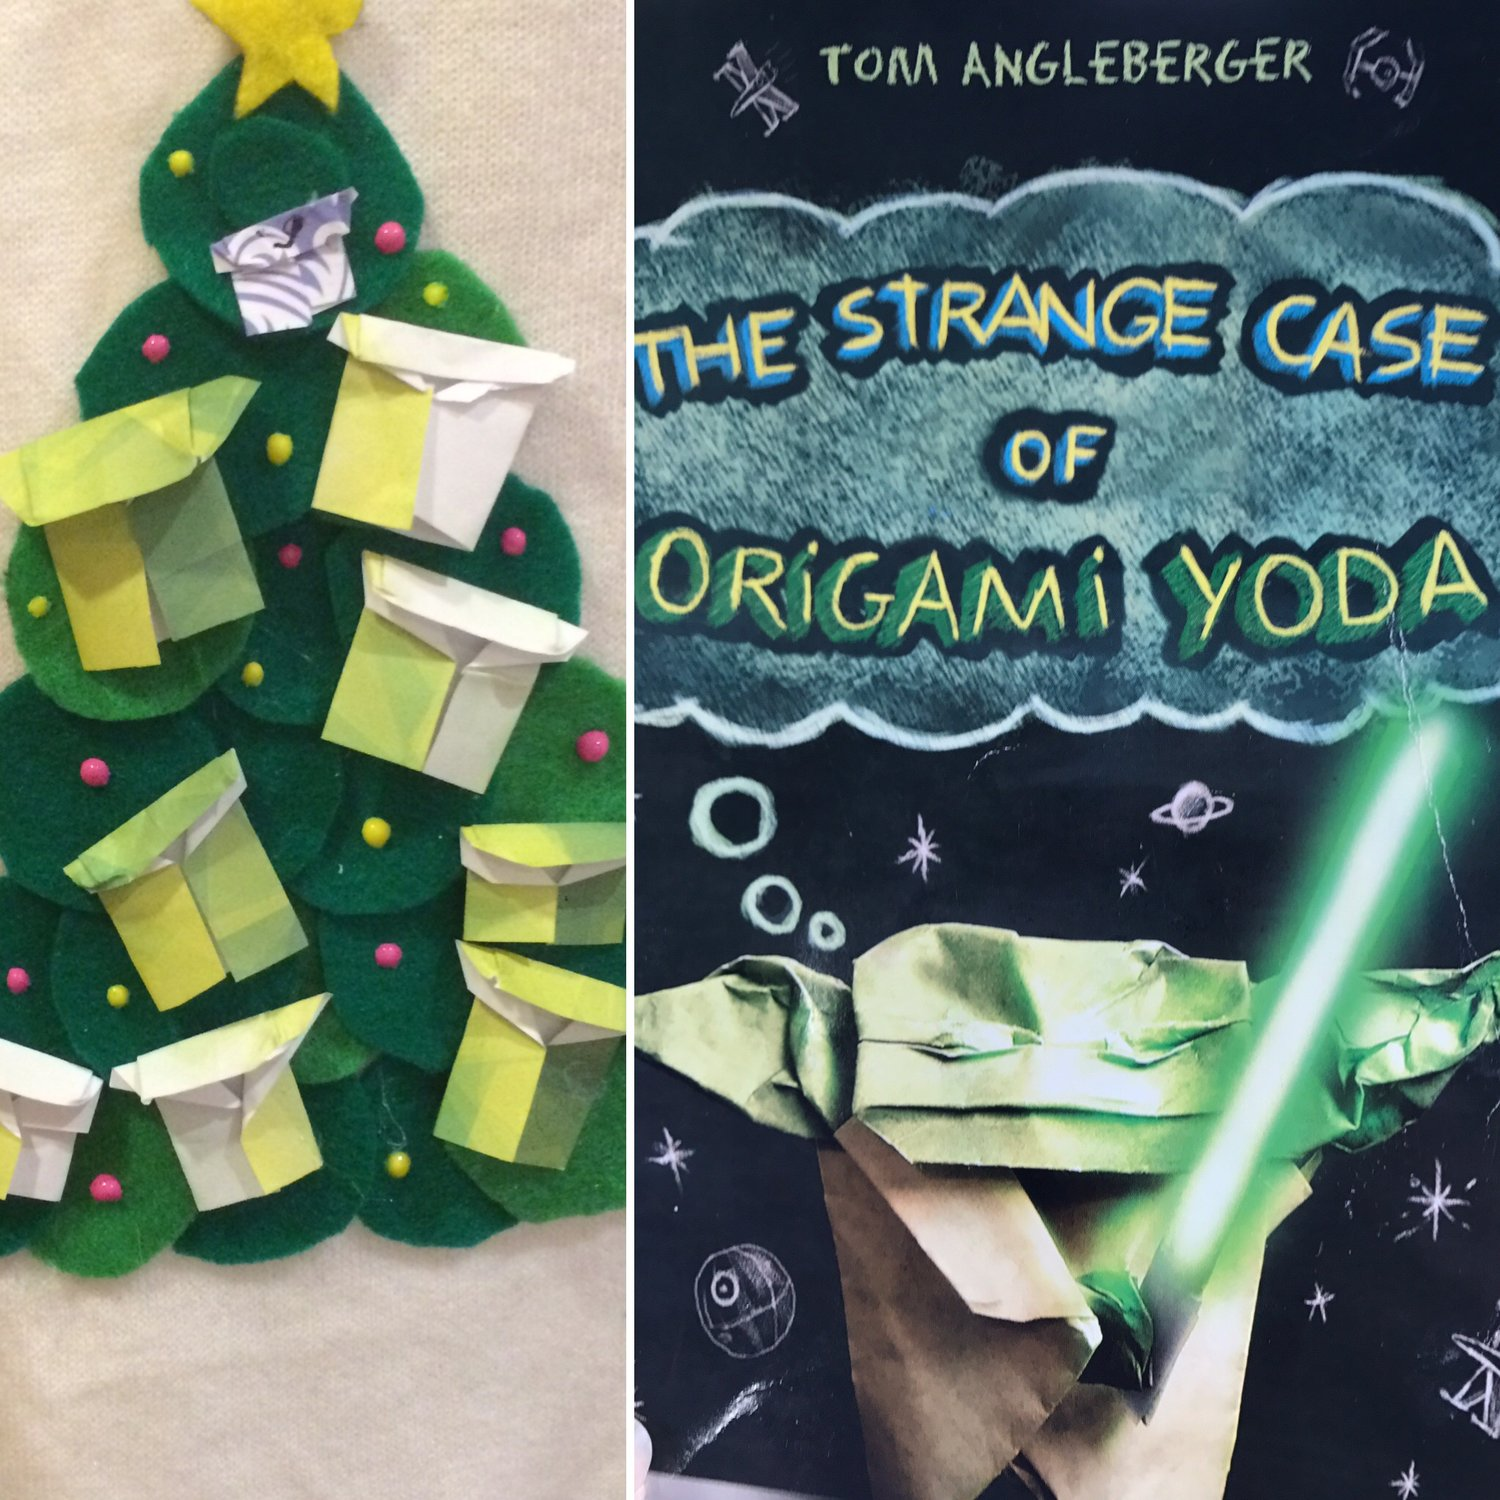 Star Wars Origami: 36 Amazing Paper-folding Projects from a Galaxy ... | 1500x1500